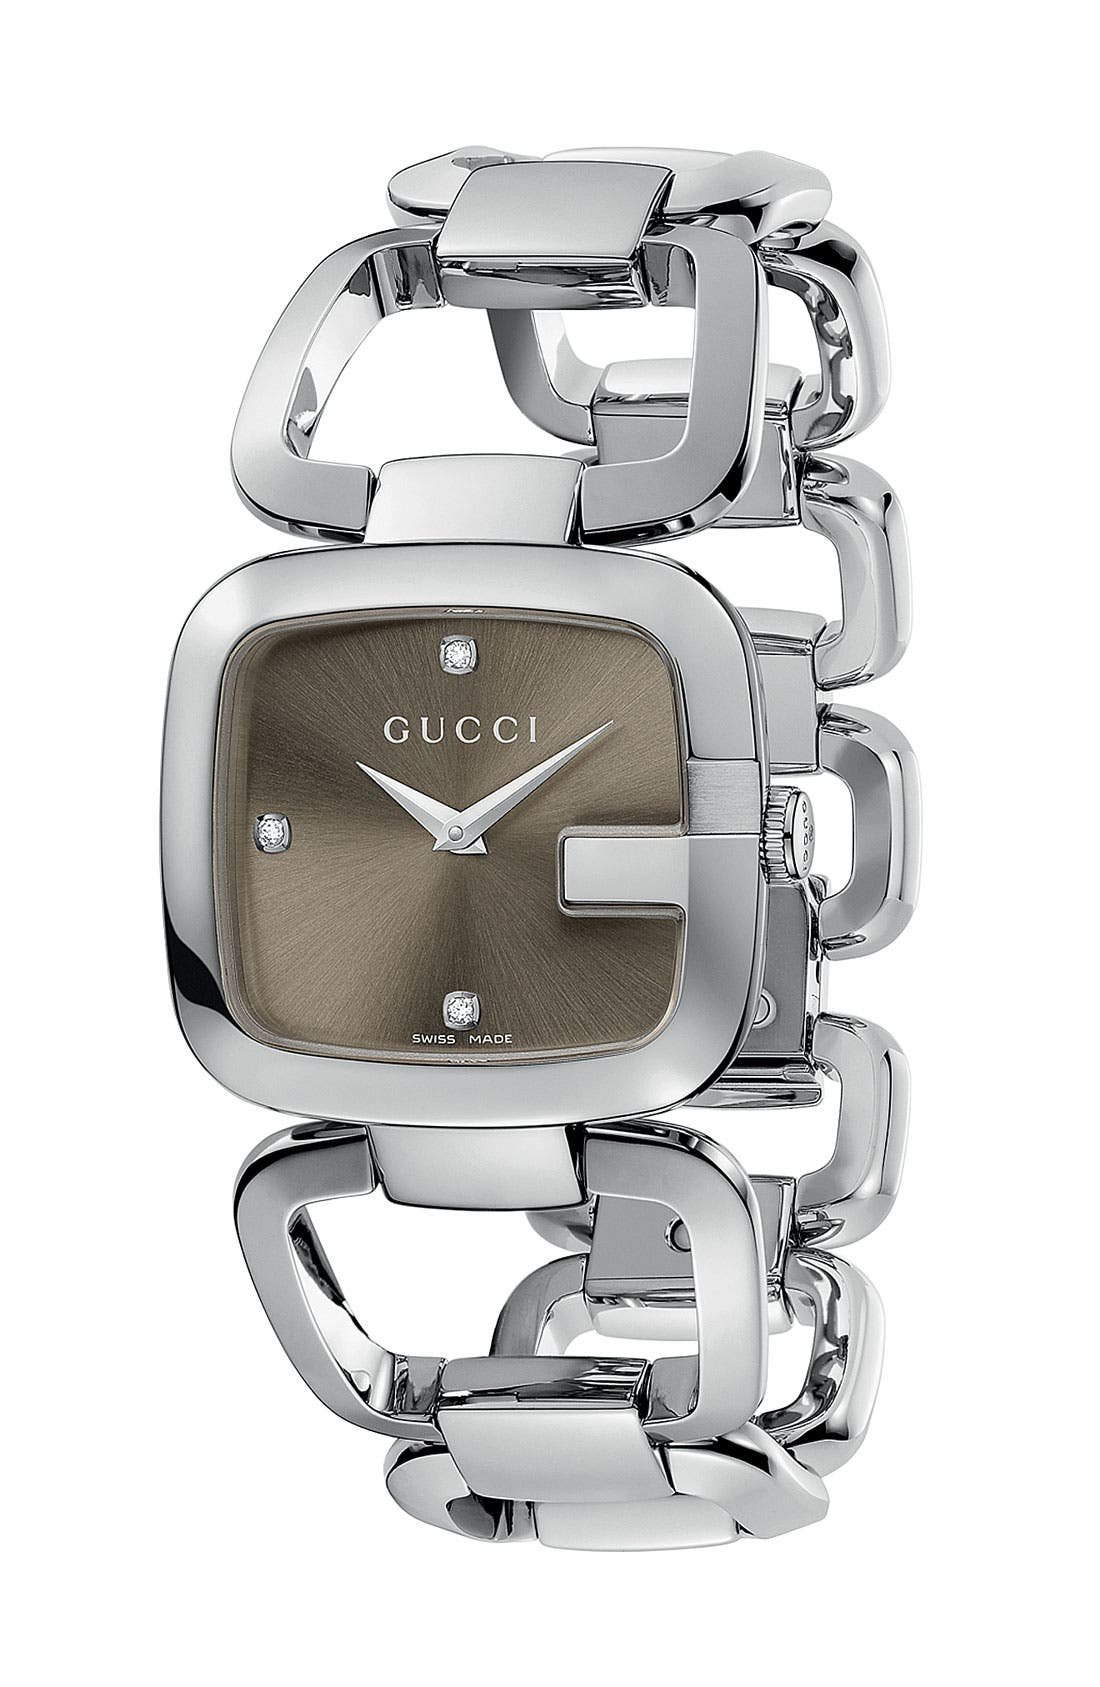 Alternate Image 1 Selected - Gucci Bracelet Watch, 32mm x 30mm